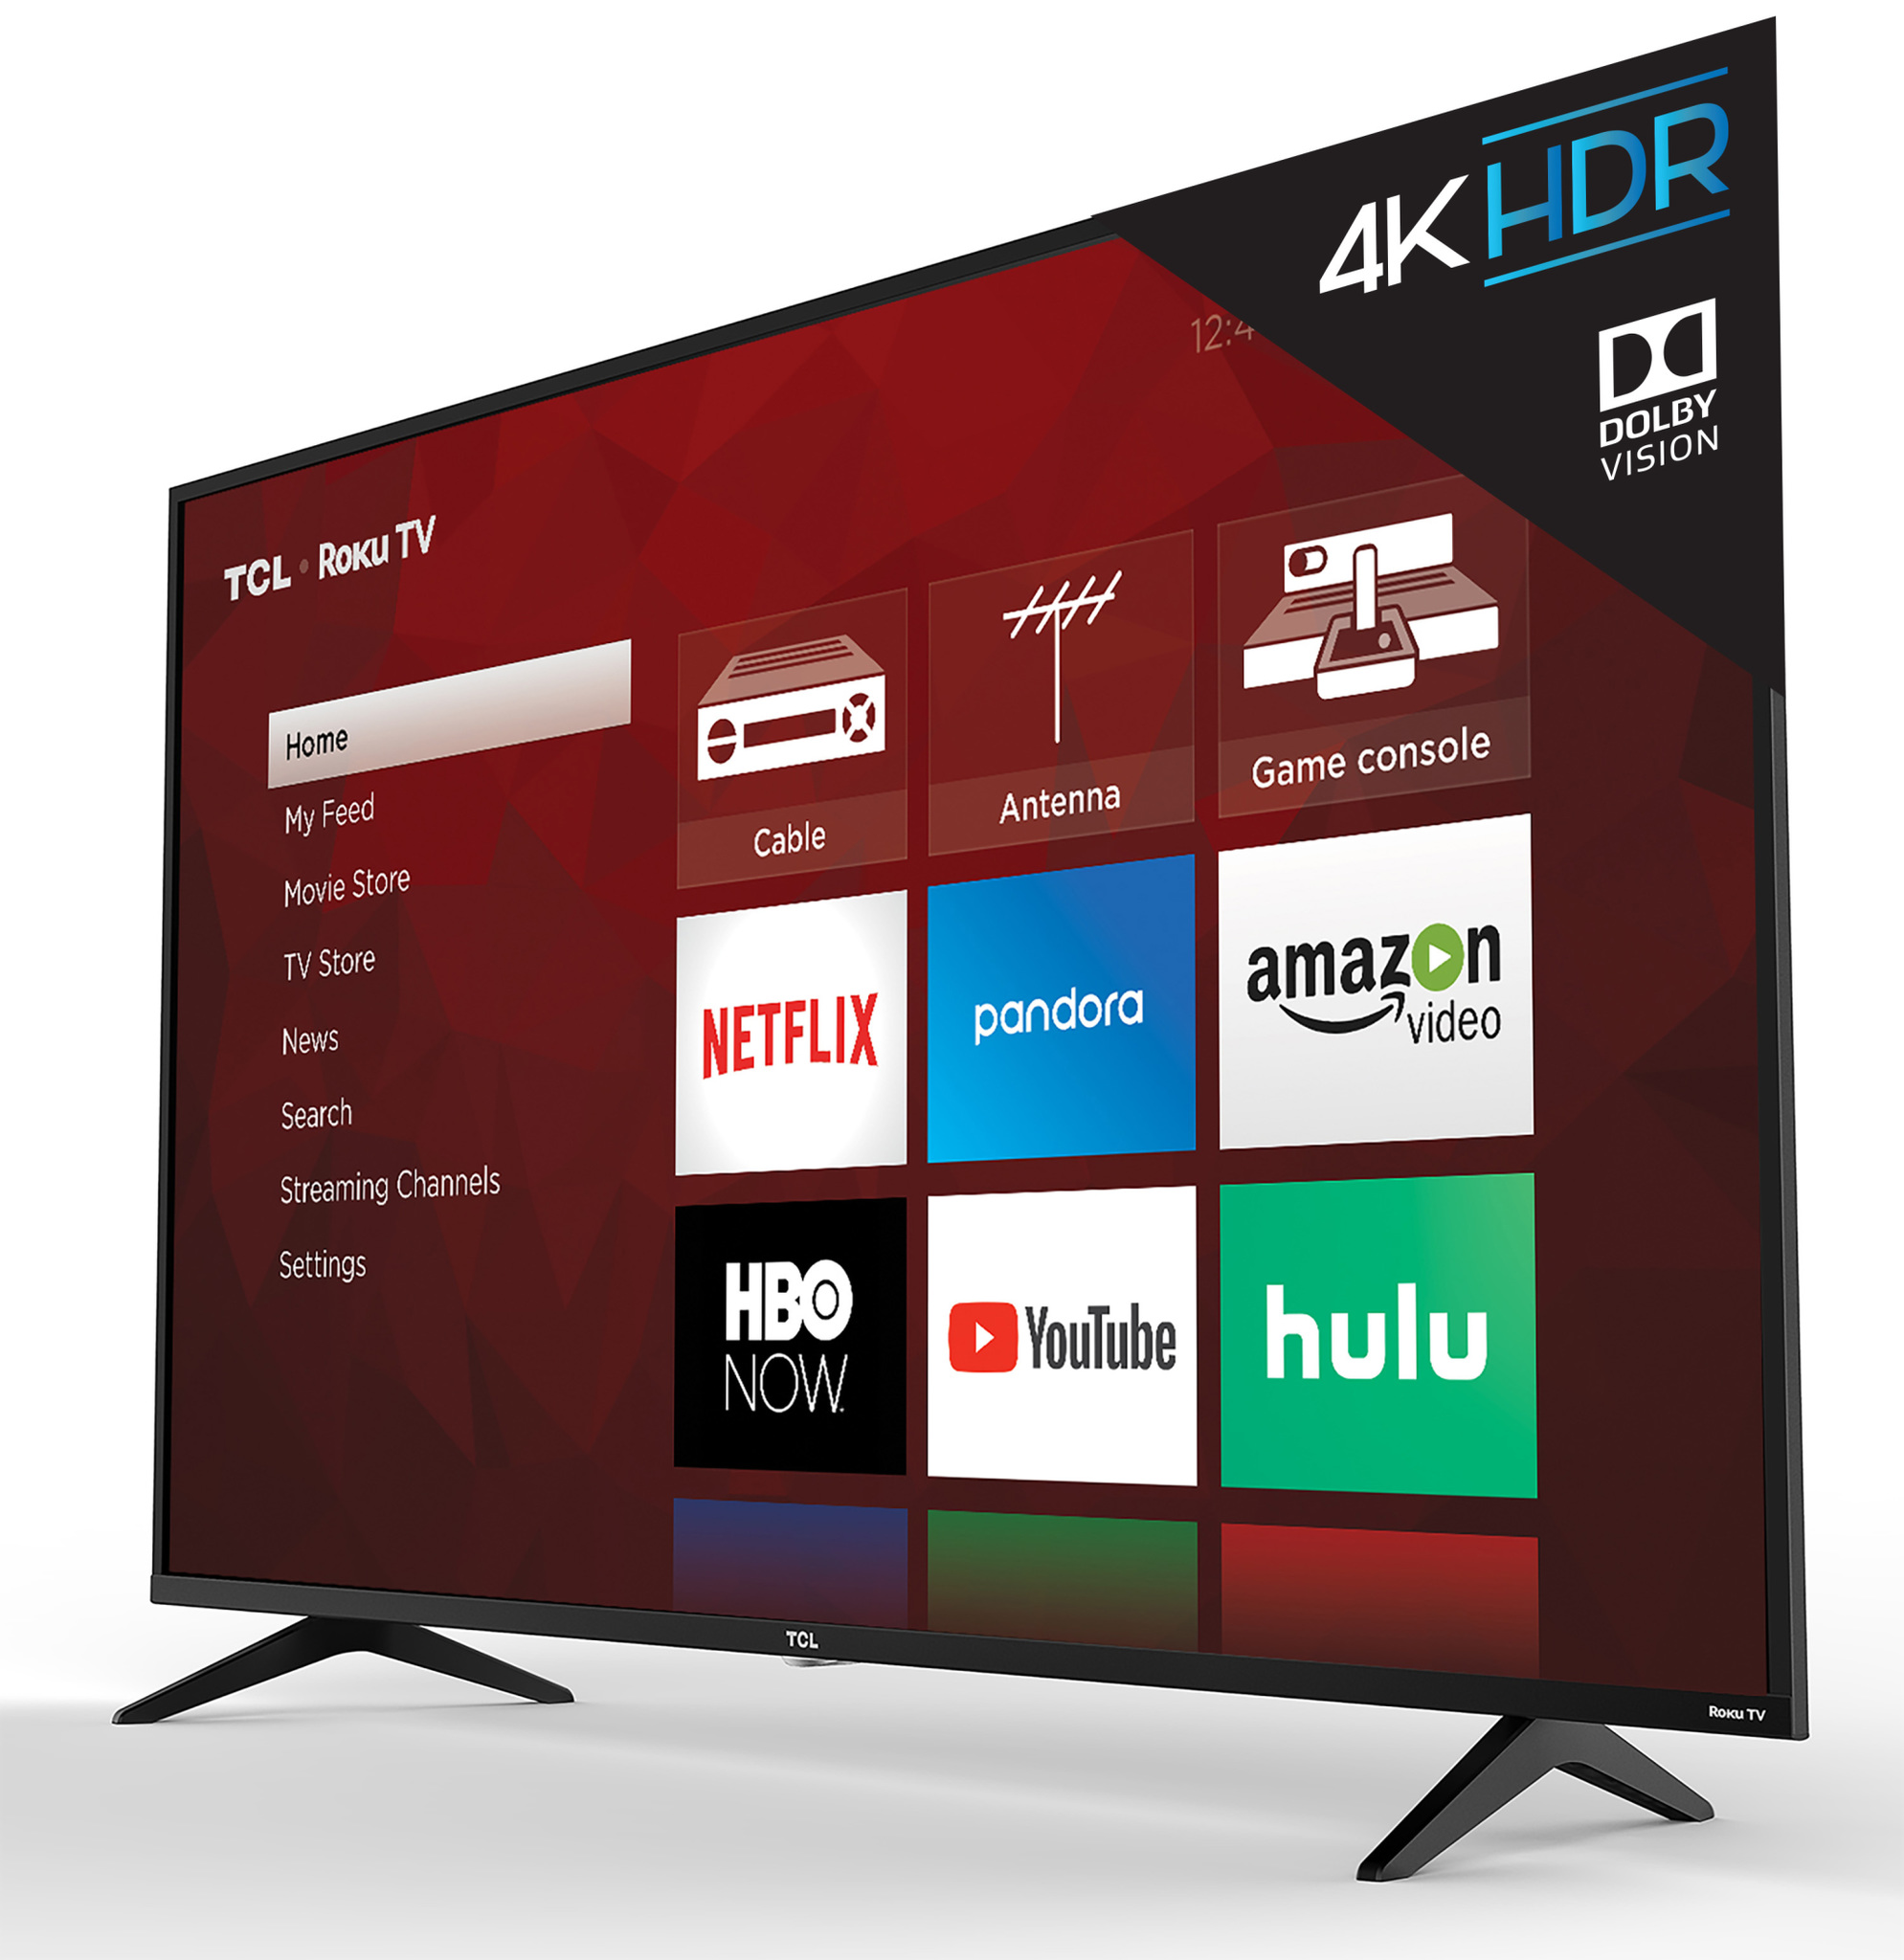 TCL's New 2018 5-Series Roku TVs With 4K Dolby Vision HDR Are Now On